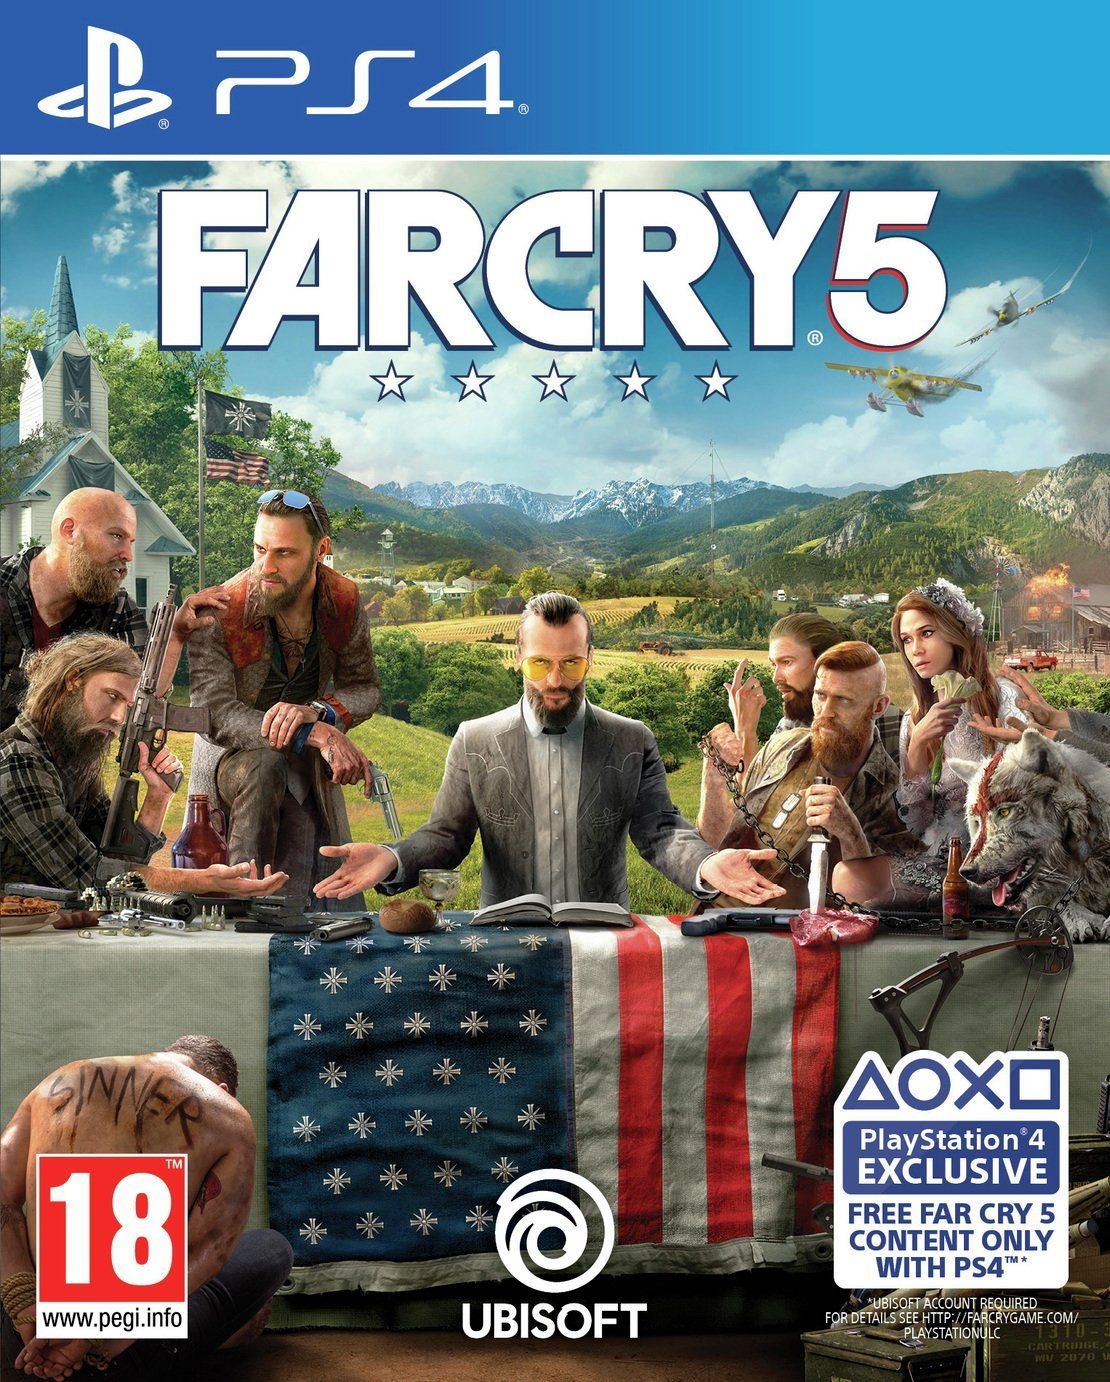 Buy Far Cry 5 PS4 Game PS4 games Argos in 2020 Far